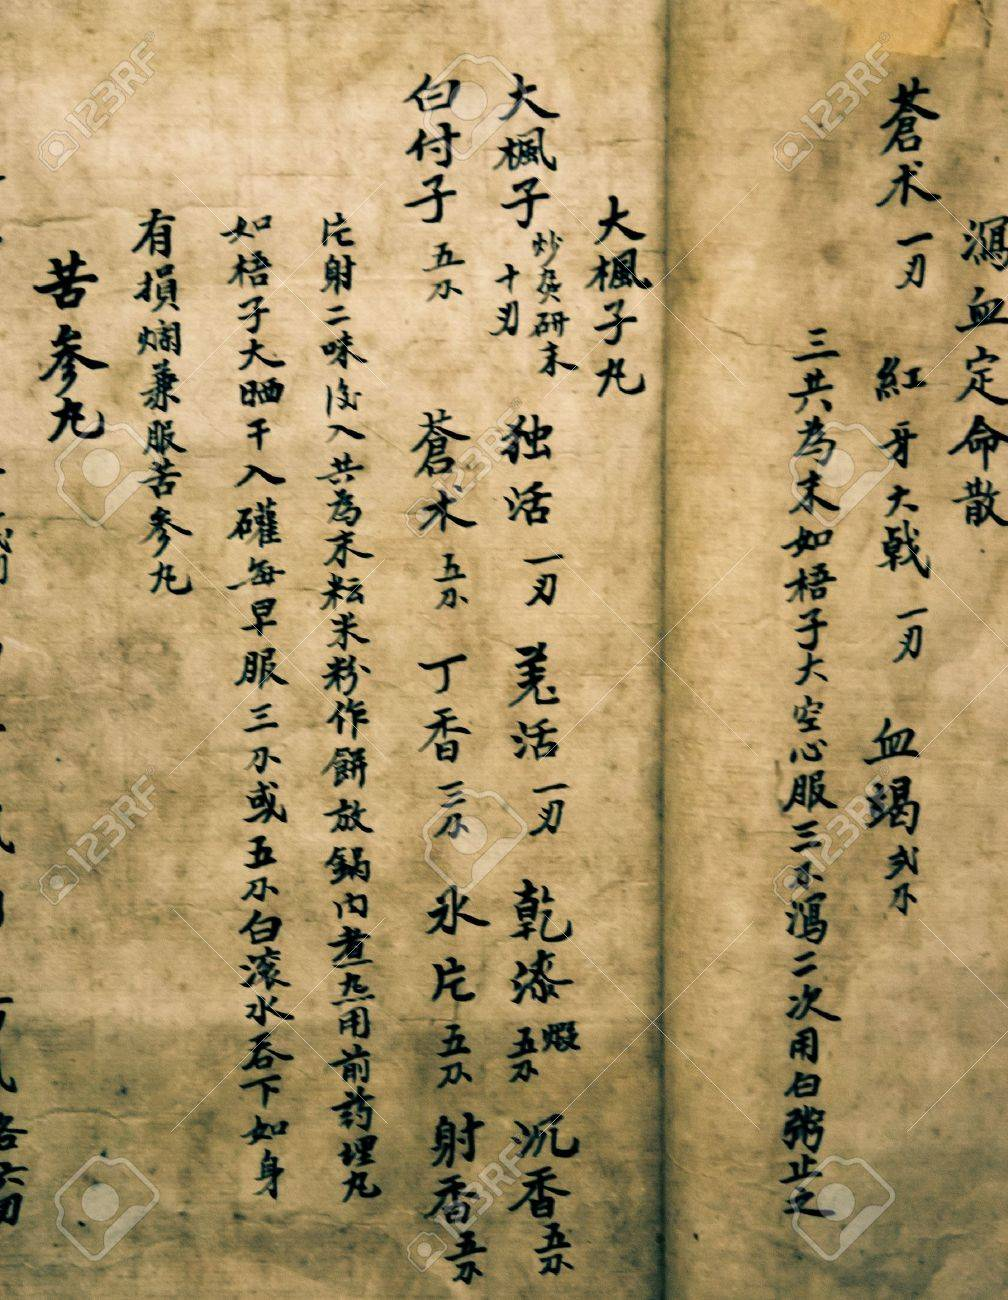 [Obrazek: 12641032-chinese-old-mystery-medical-book-script.jpg]